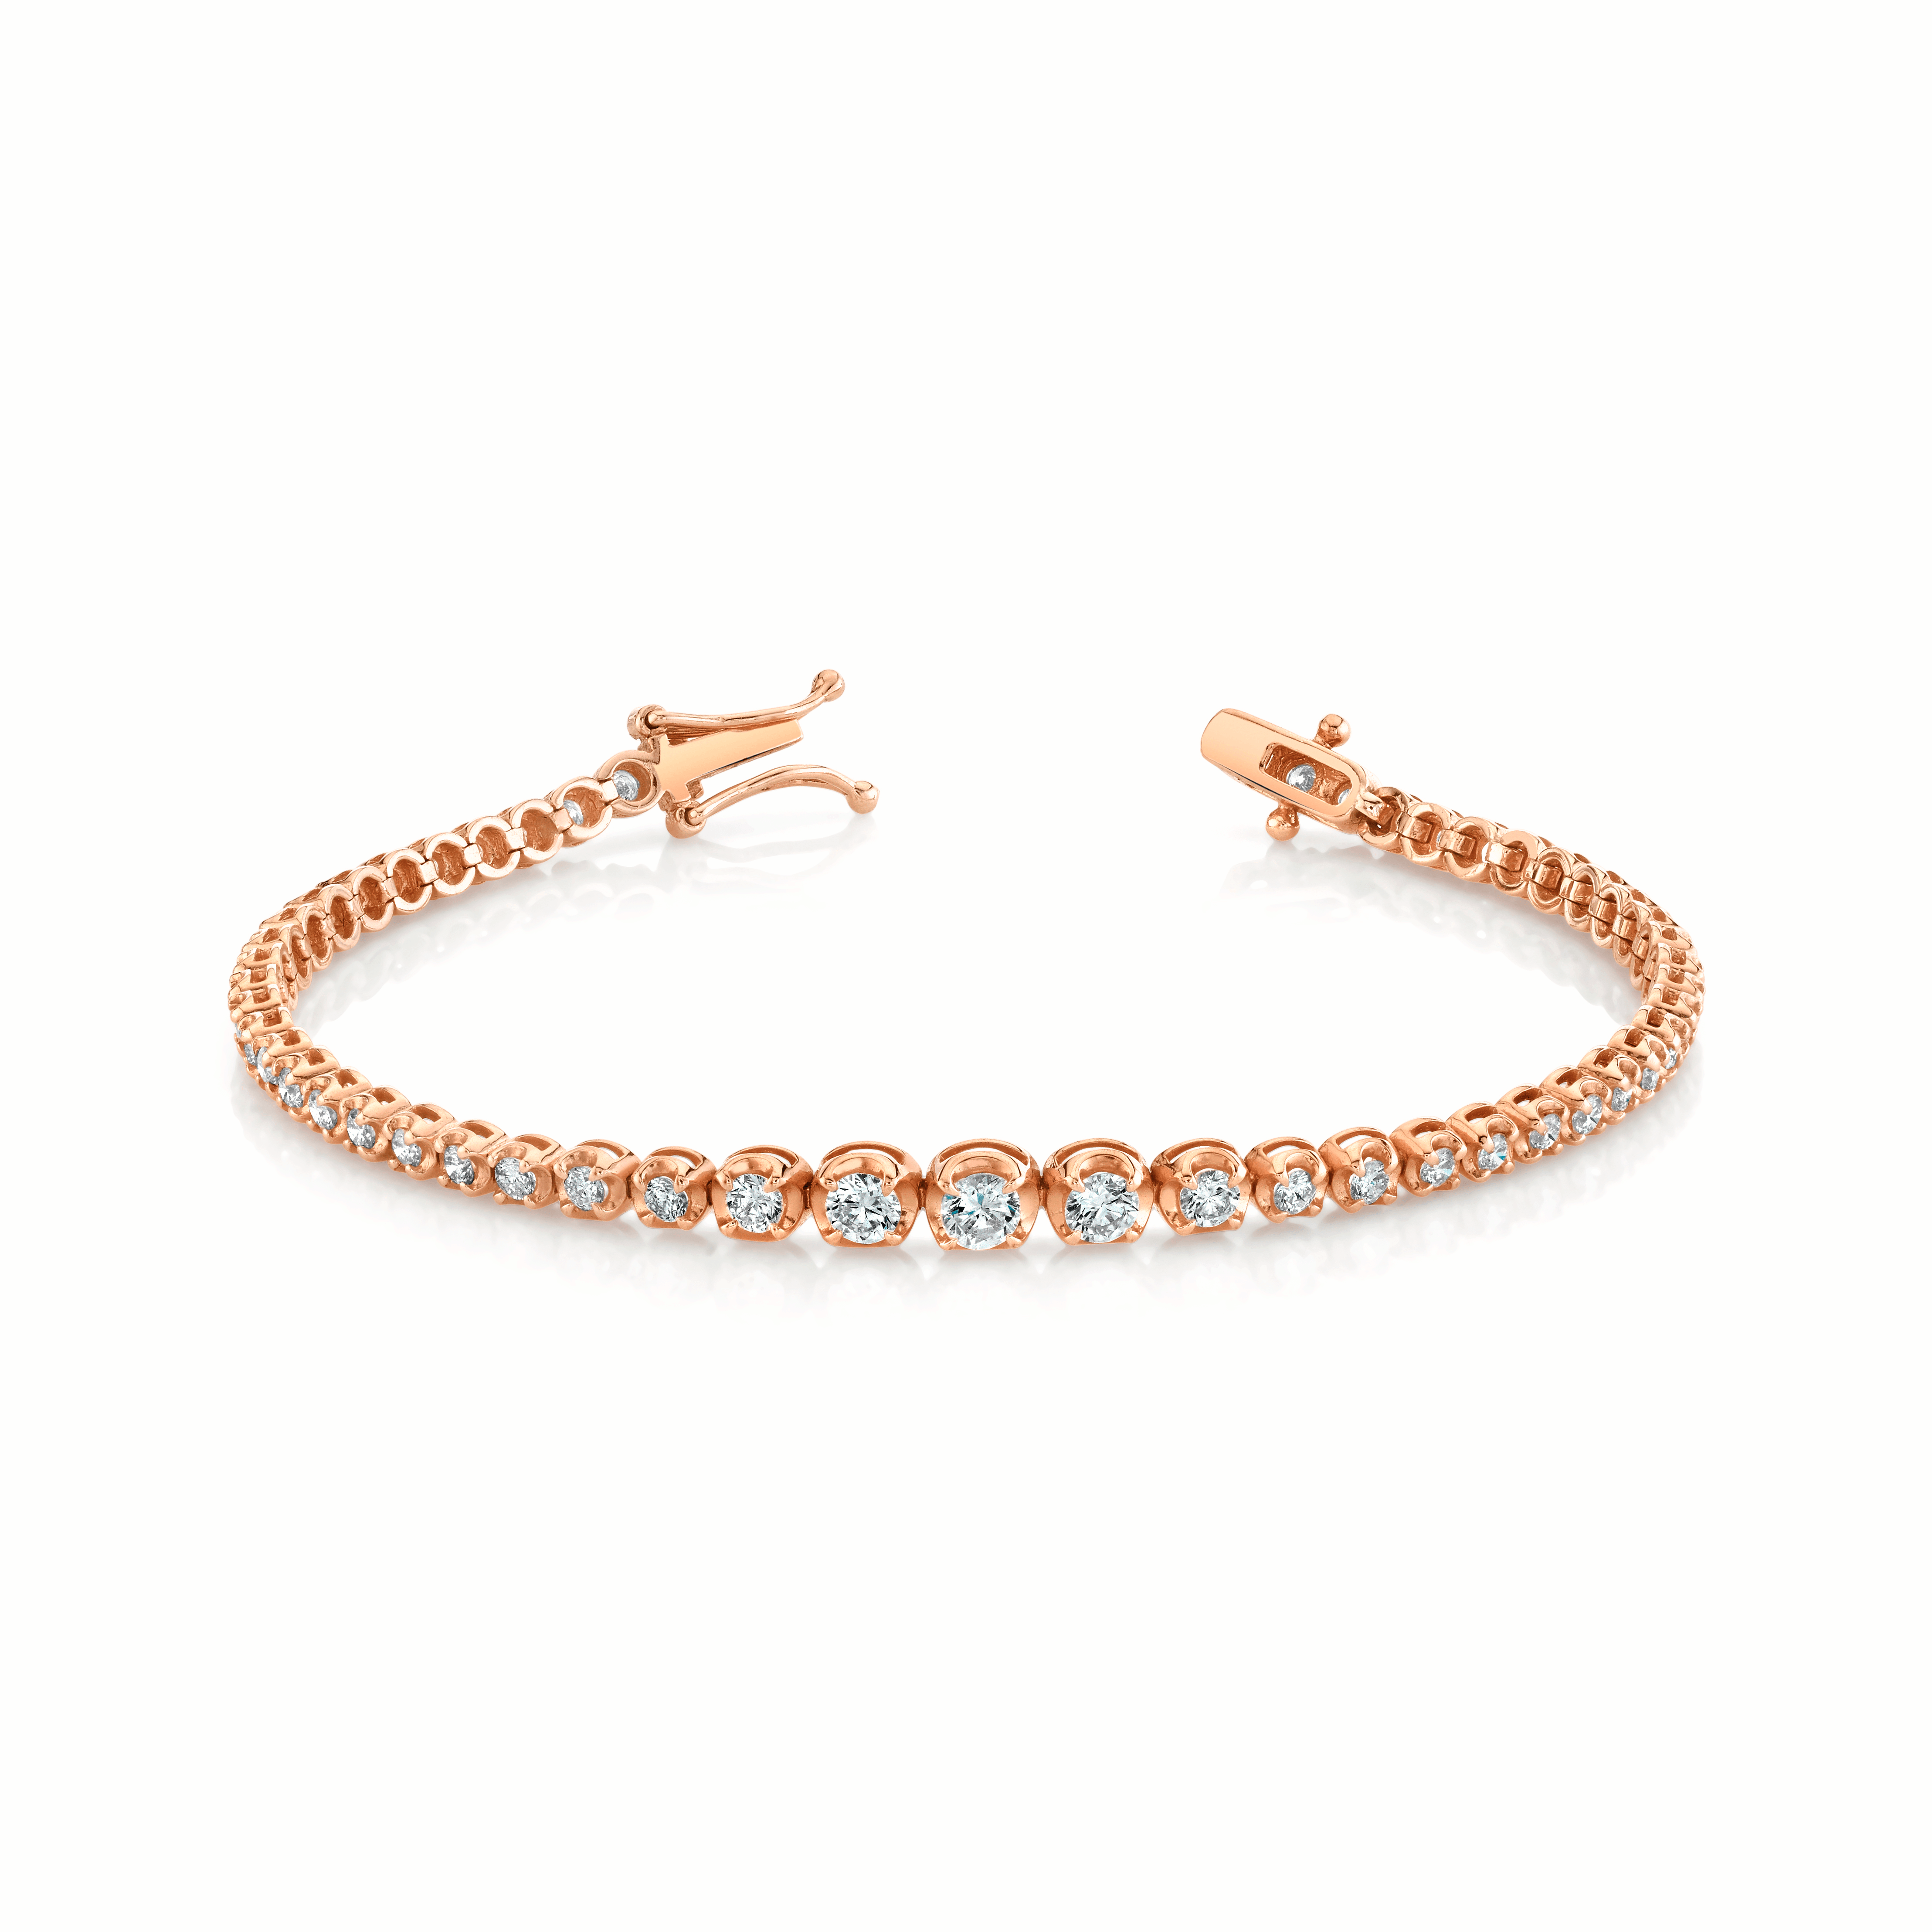 NEW! Graduated Diamond Goddess Bracelet